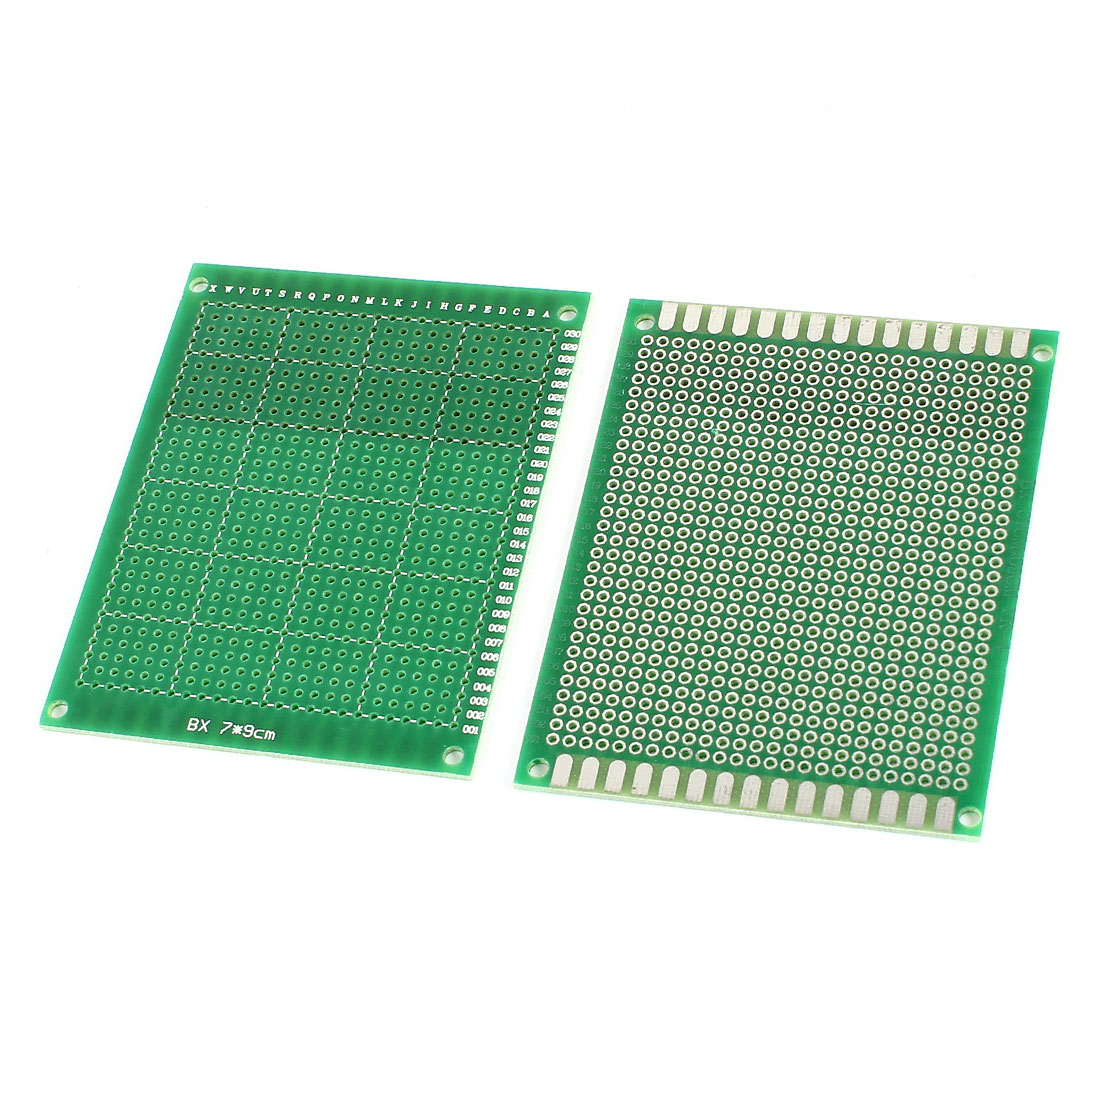 2 PCS 7cm x 9cm Single Sided Prototype Paper Tinned Universal PCB Print Board for Circuit DIY